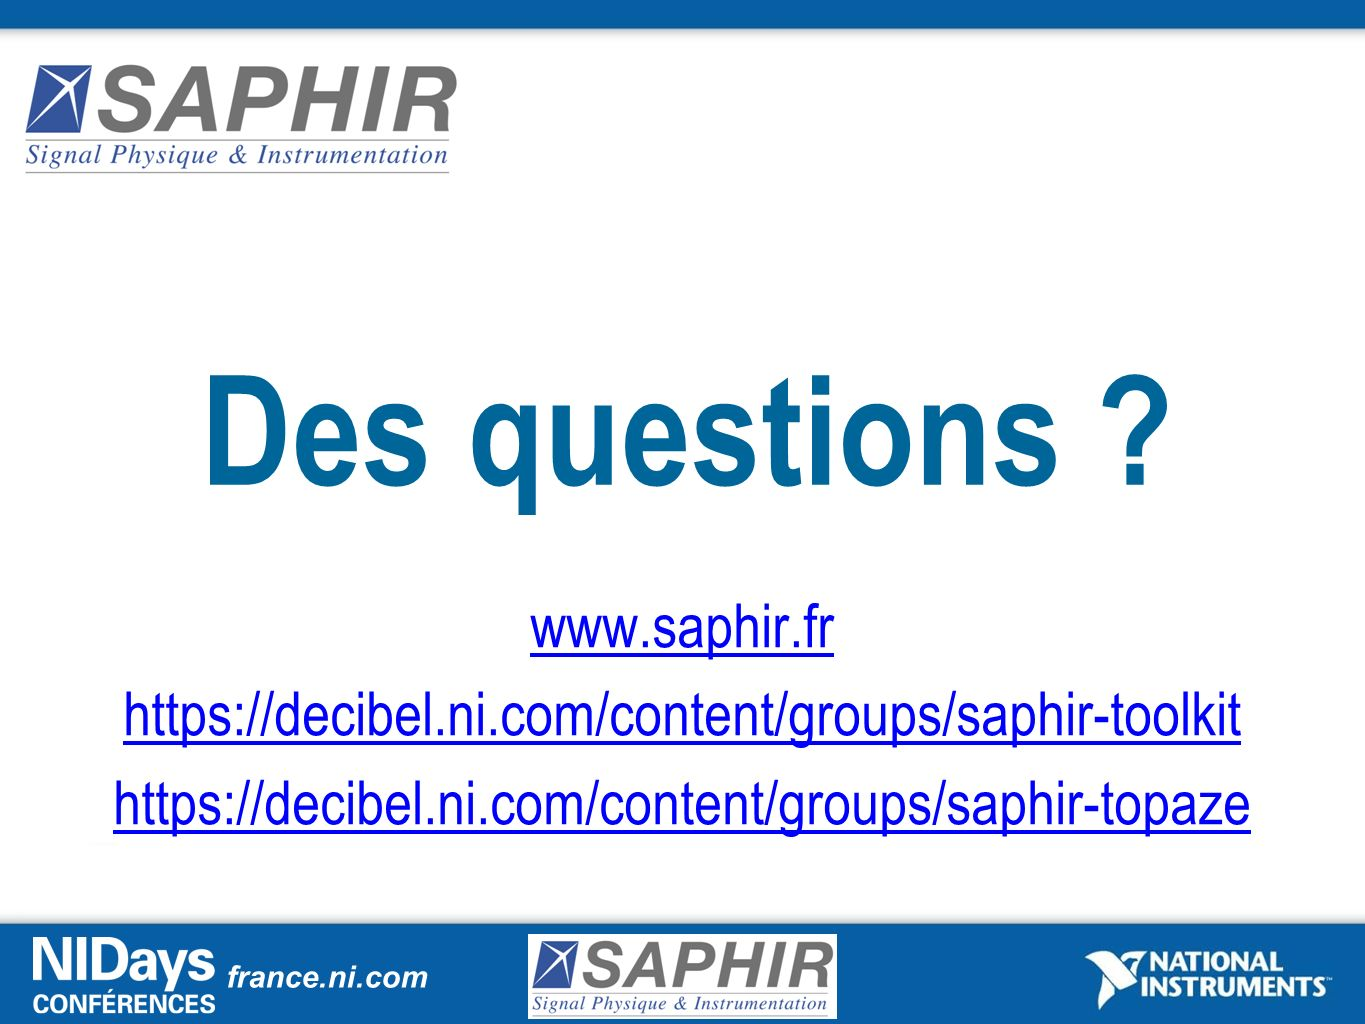 france.ni.com Des questions ? www.saphir.fr https://decibel.ni.com/content/groups/saphir-toolkit https://decibel.ni.com/content/groups/saphir-topaze